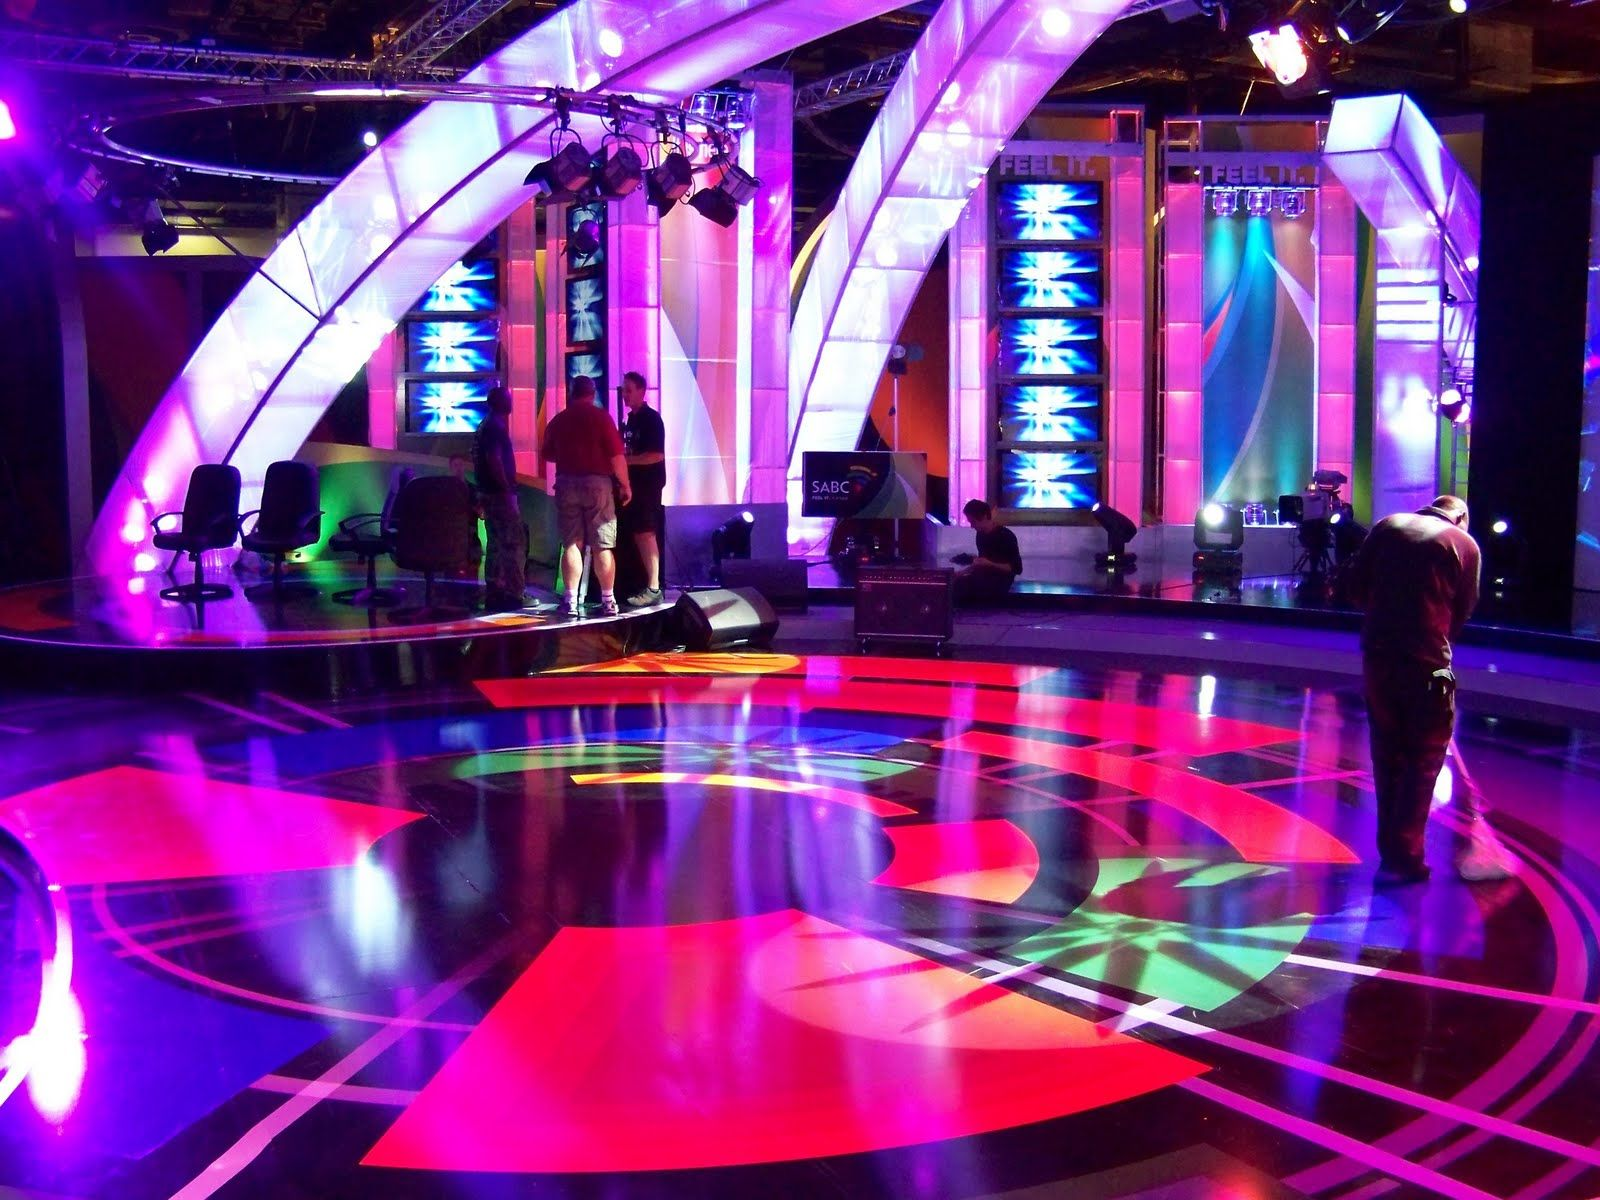 Design Shows On Tv Tv With Thinus Pictorial A Photo Tour Of The Sabc's Impressive